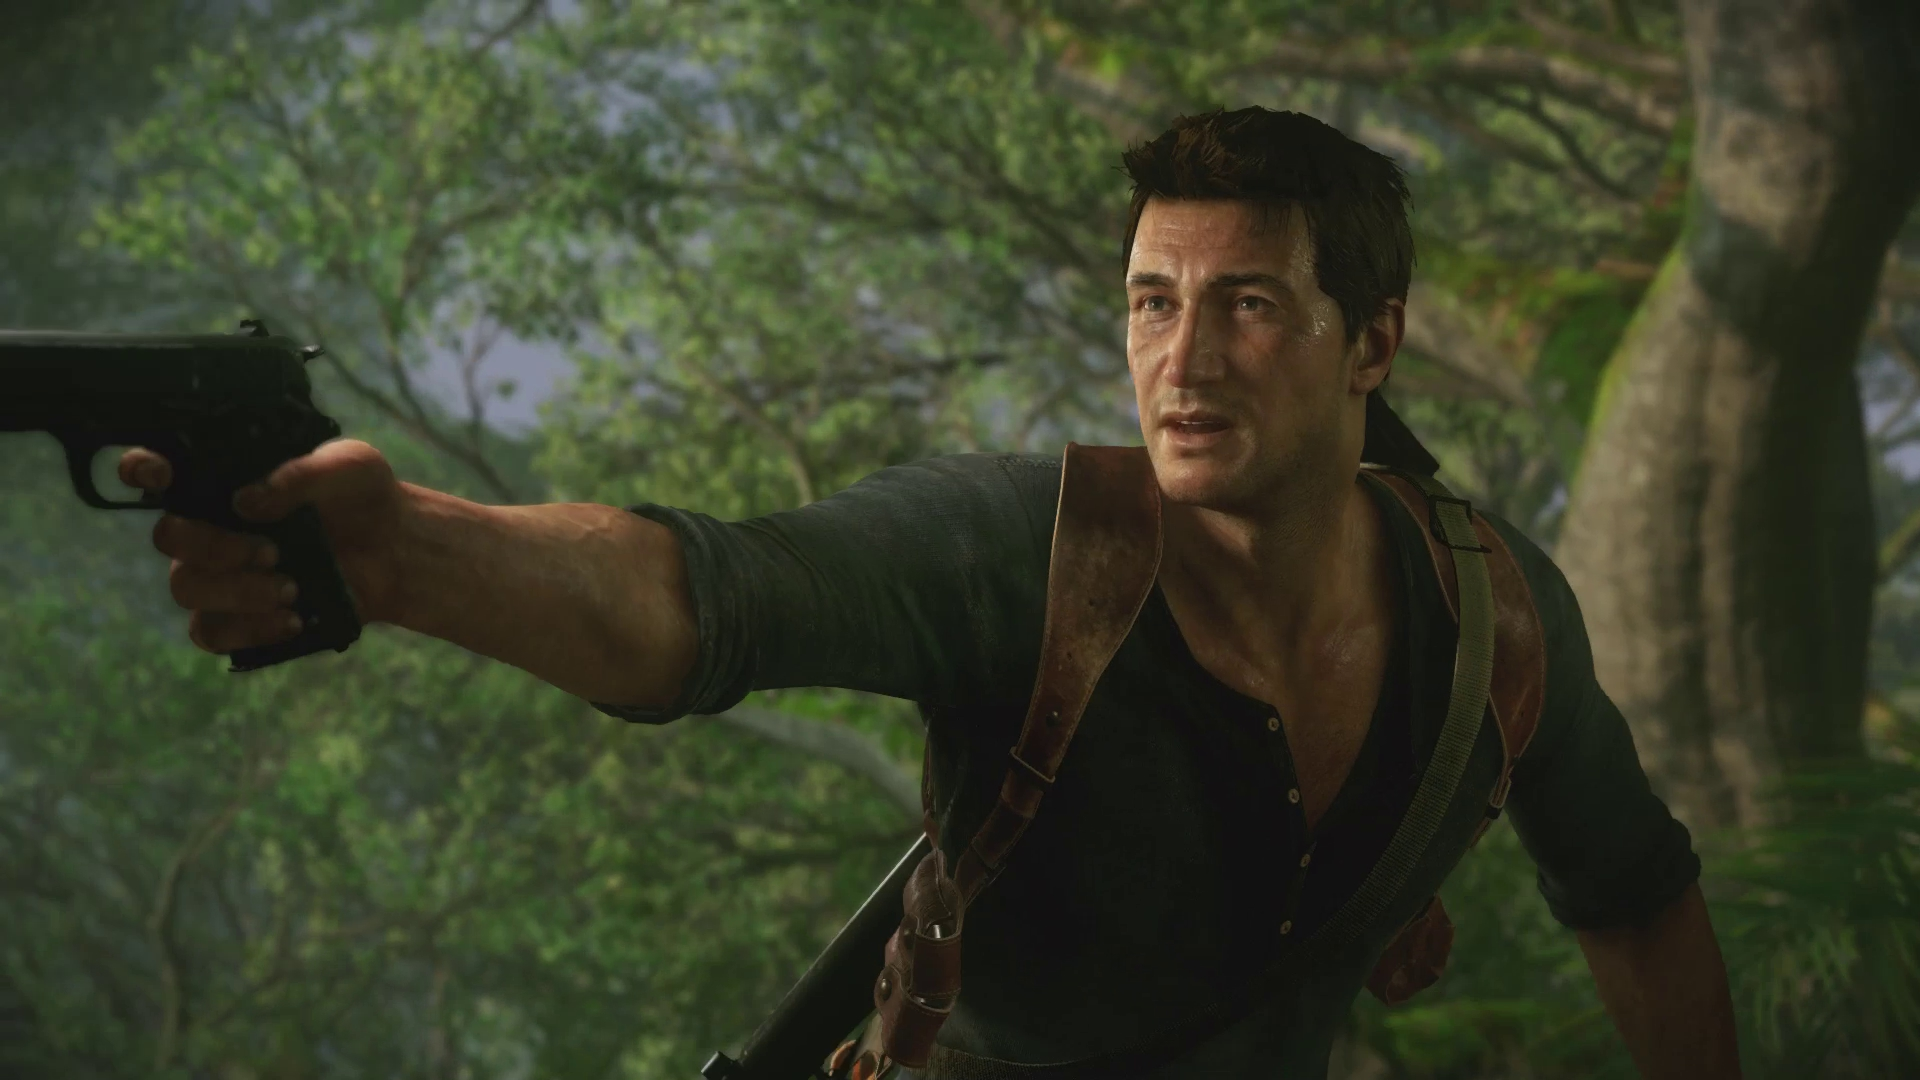 Top 50 most aniticpated games of 2016 Uncharted 4